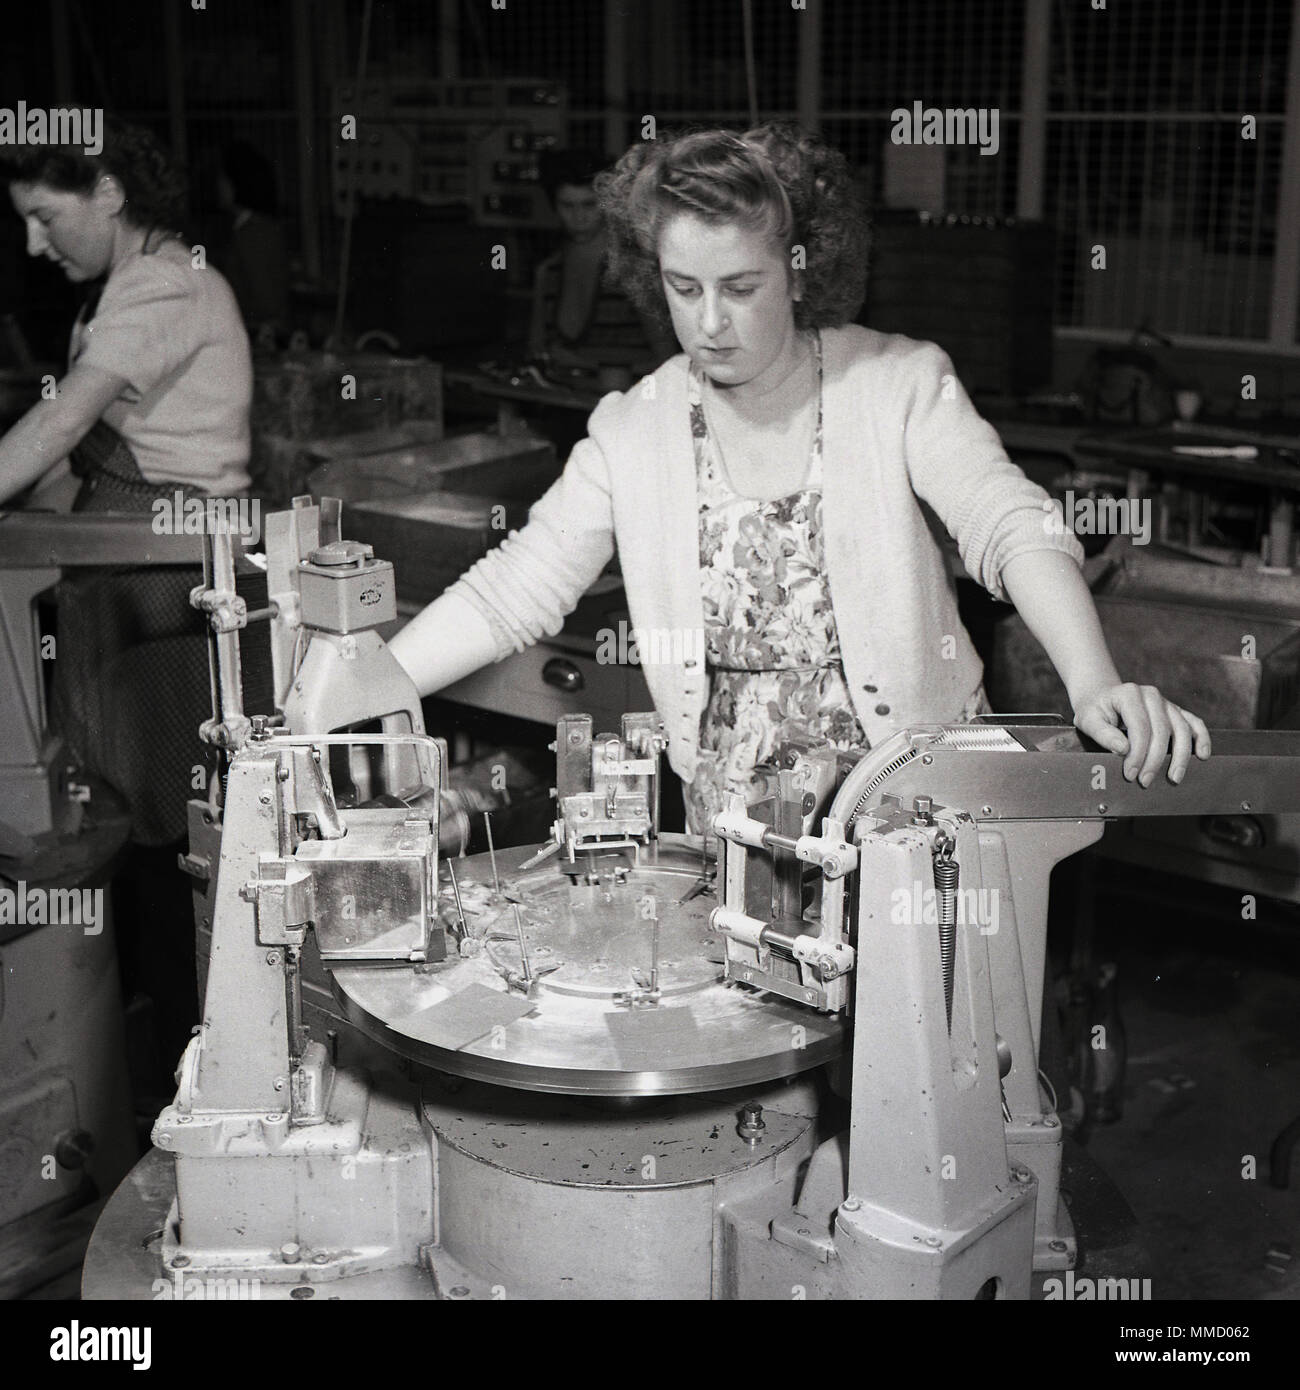 1950s, woman in ordinary day clothes working on a factory floor with a large engineering machine tool, England, UK. With the shortage of male workers following WW2, many woman continued in traditional male orientated jobs they had taken on temporarily during the war effort. - Stock Image